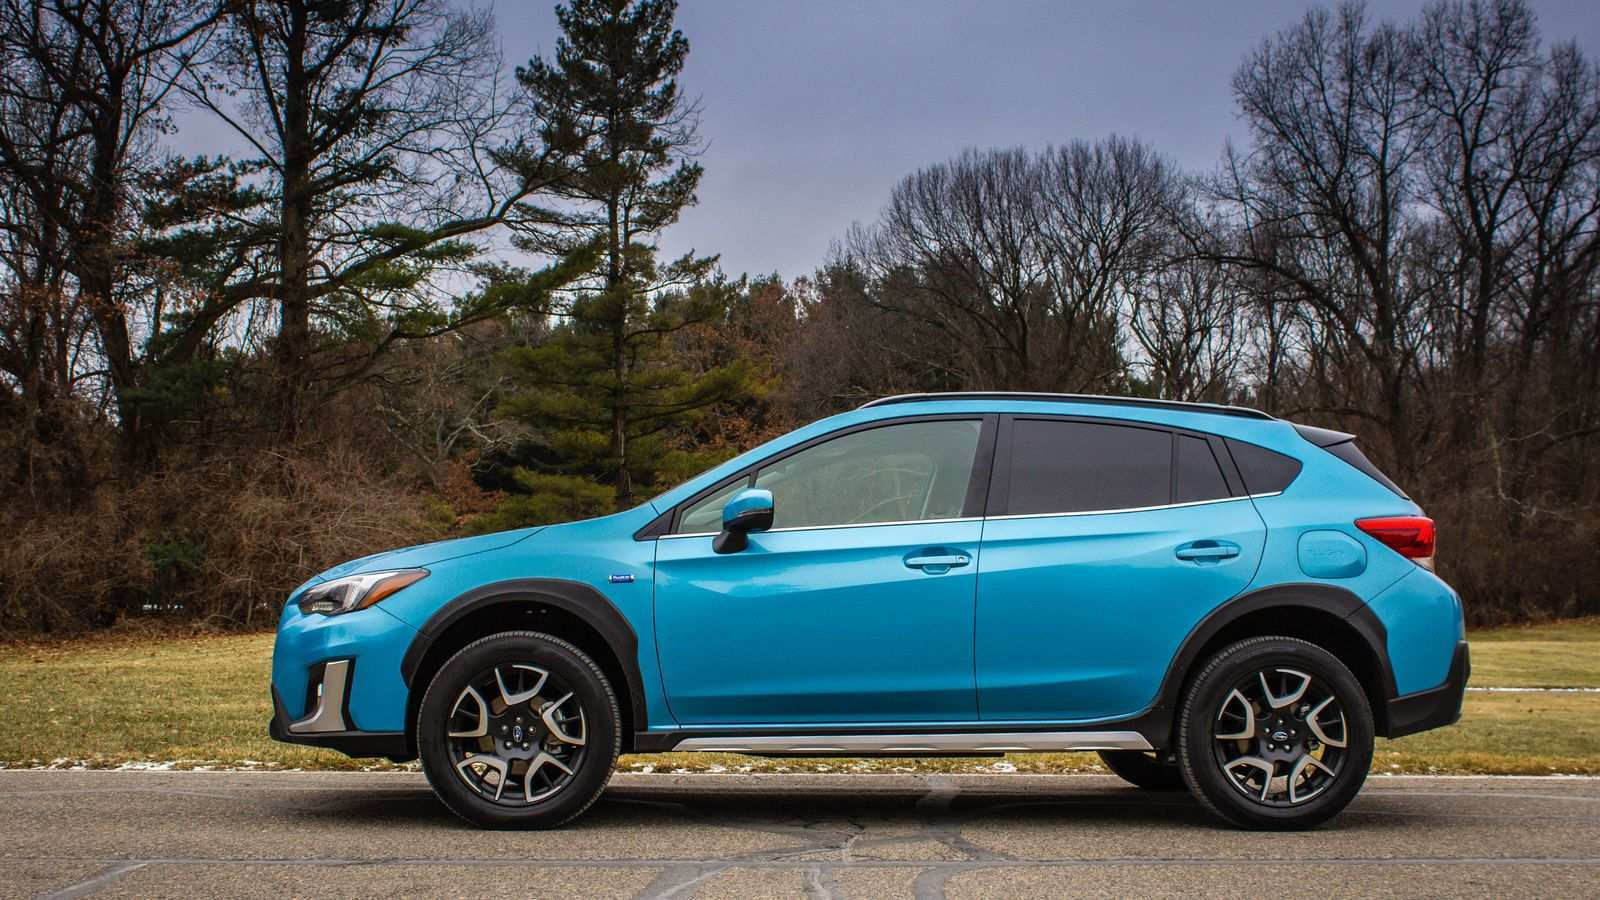 50 Best Review Subaru 2019 Crosstrek Hybrid Price And Release Date Pictures by Subaru 2019 Crosstrek Hybrid Price And Release Date